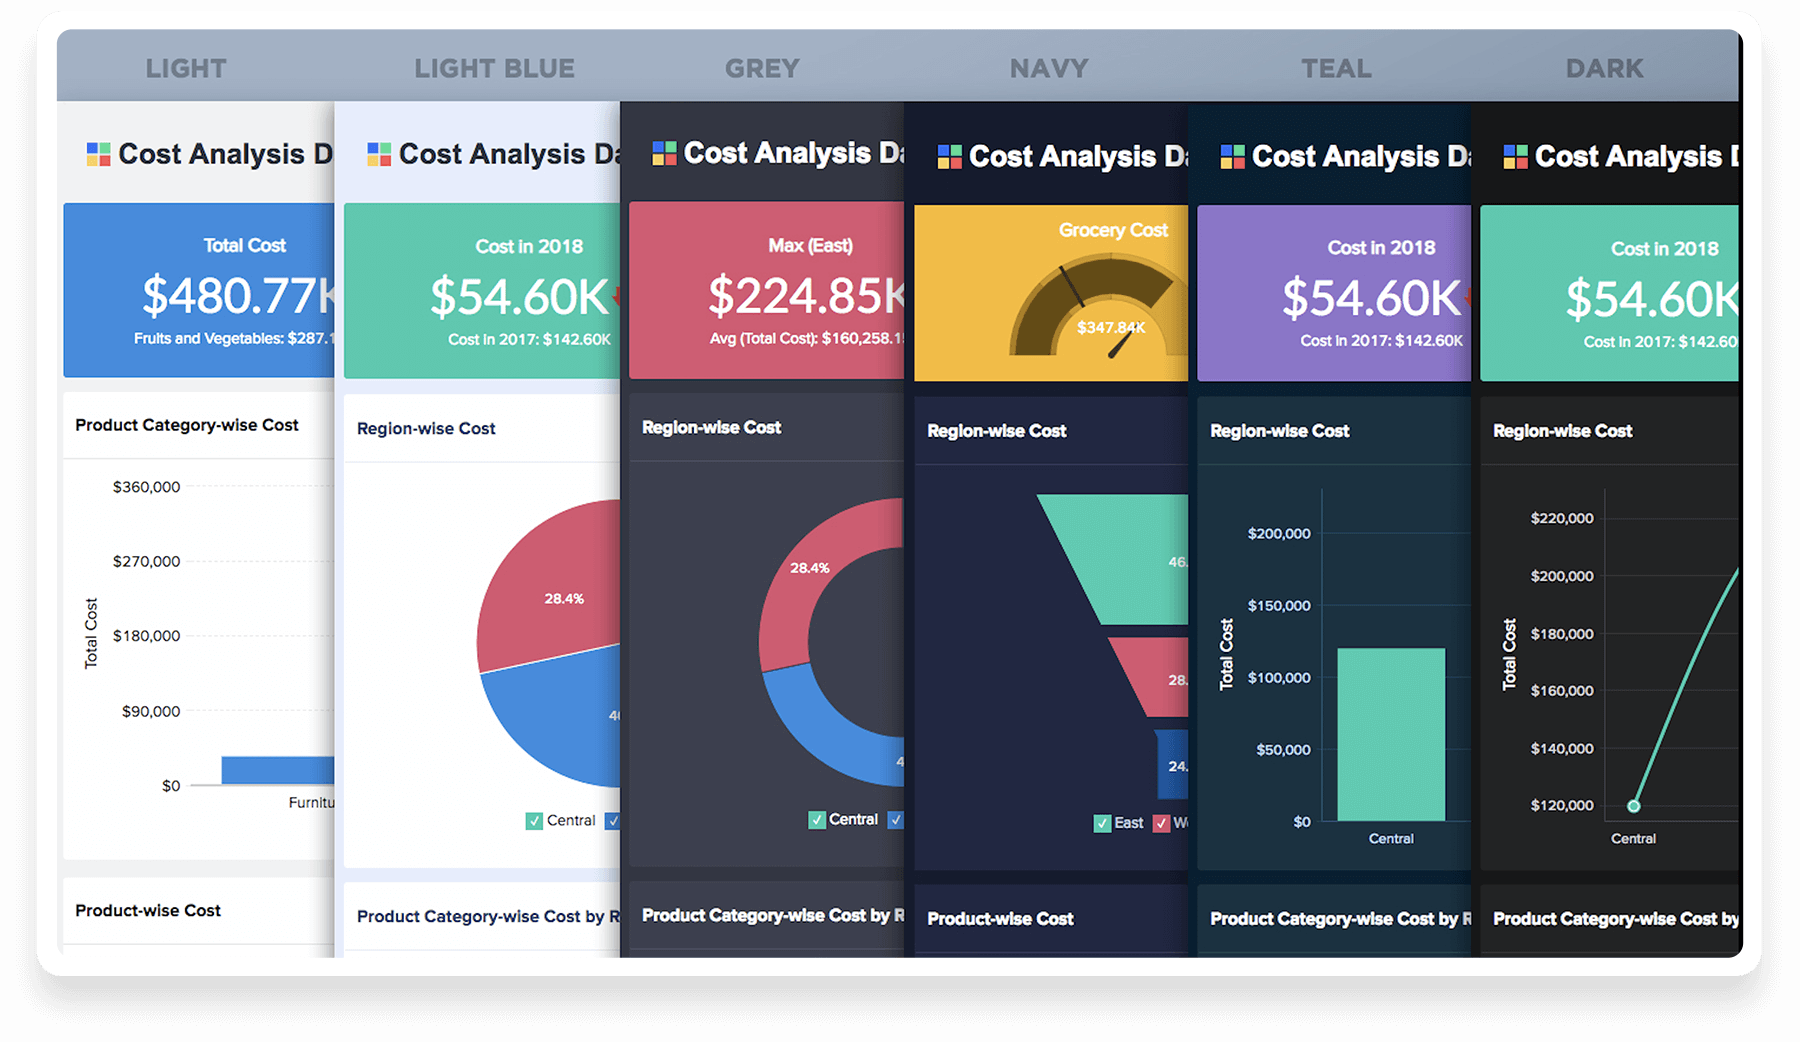 Stunning dashboards: Choose from a range of visually appealing themes for your dashboard. Try any of the packaged themes available, or customize your own theme.